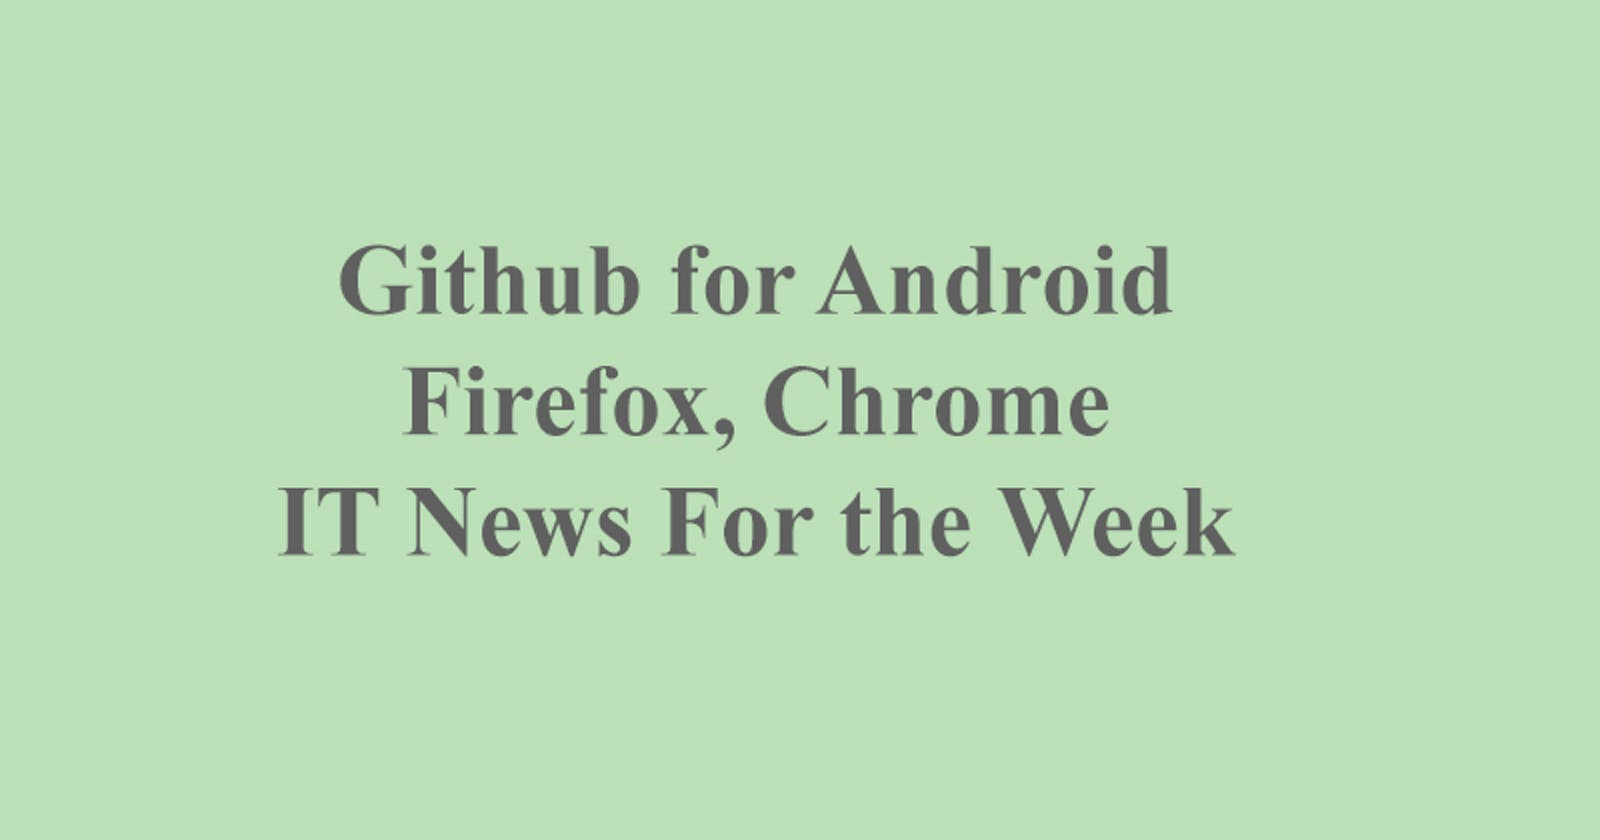 IT News For the Week, Github App for Android, Chrome Updates, Firefox